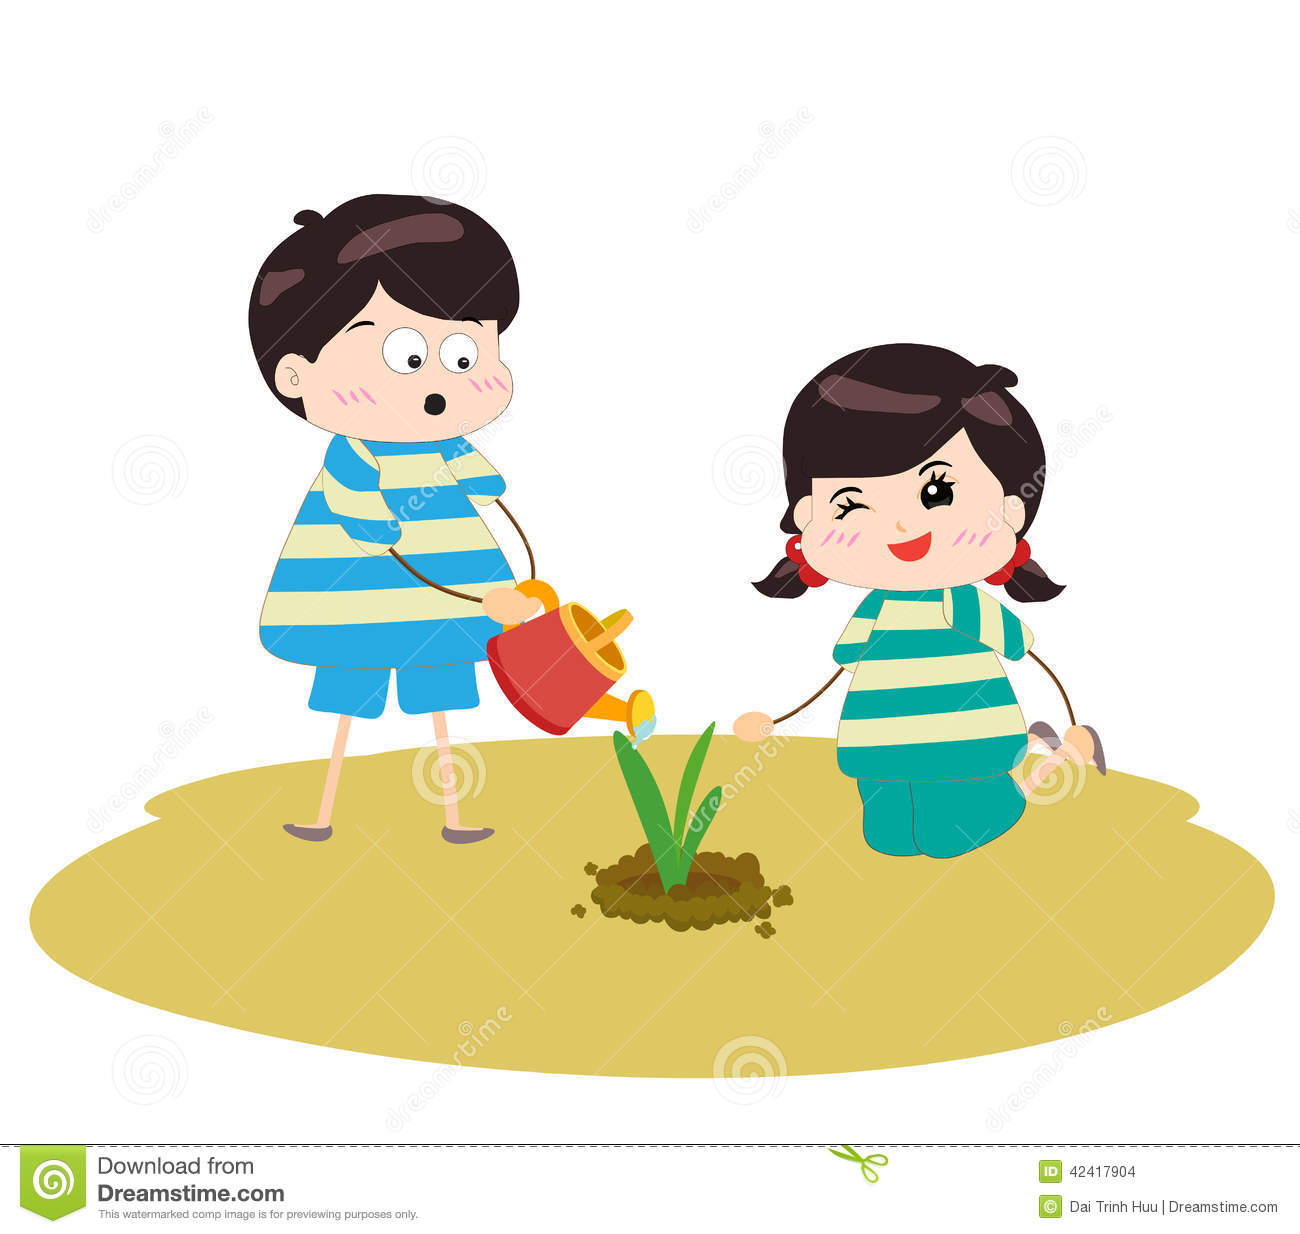 Seed clipart kid plant Kids And Watering Two clipart